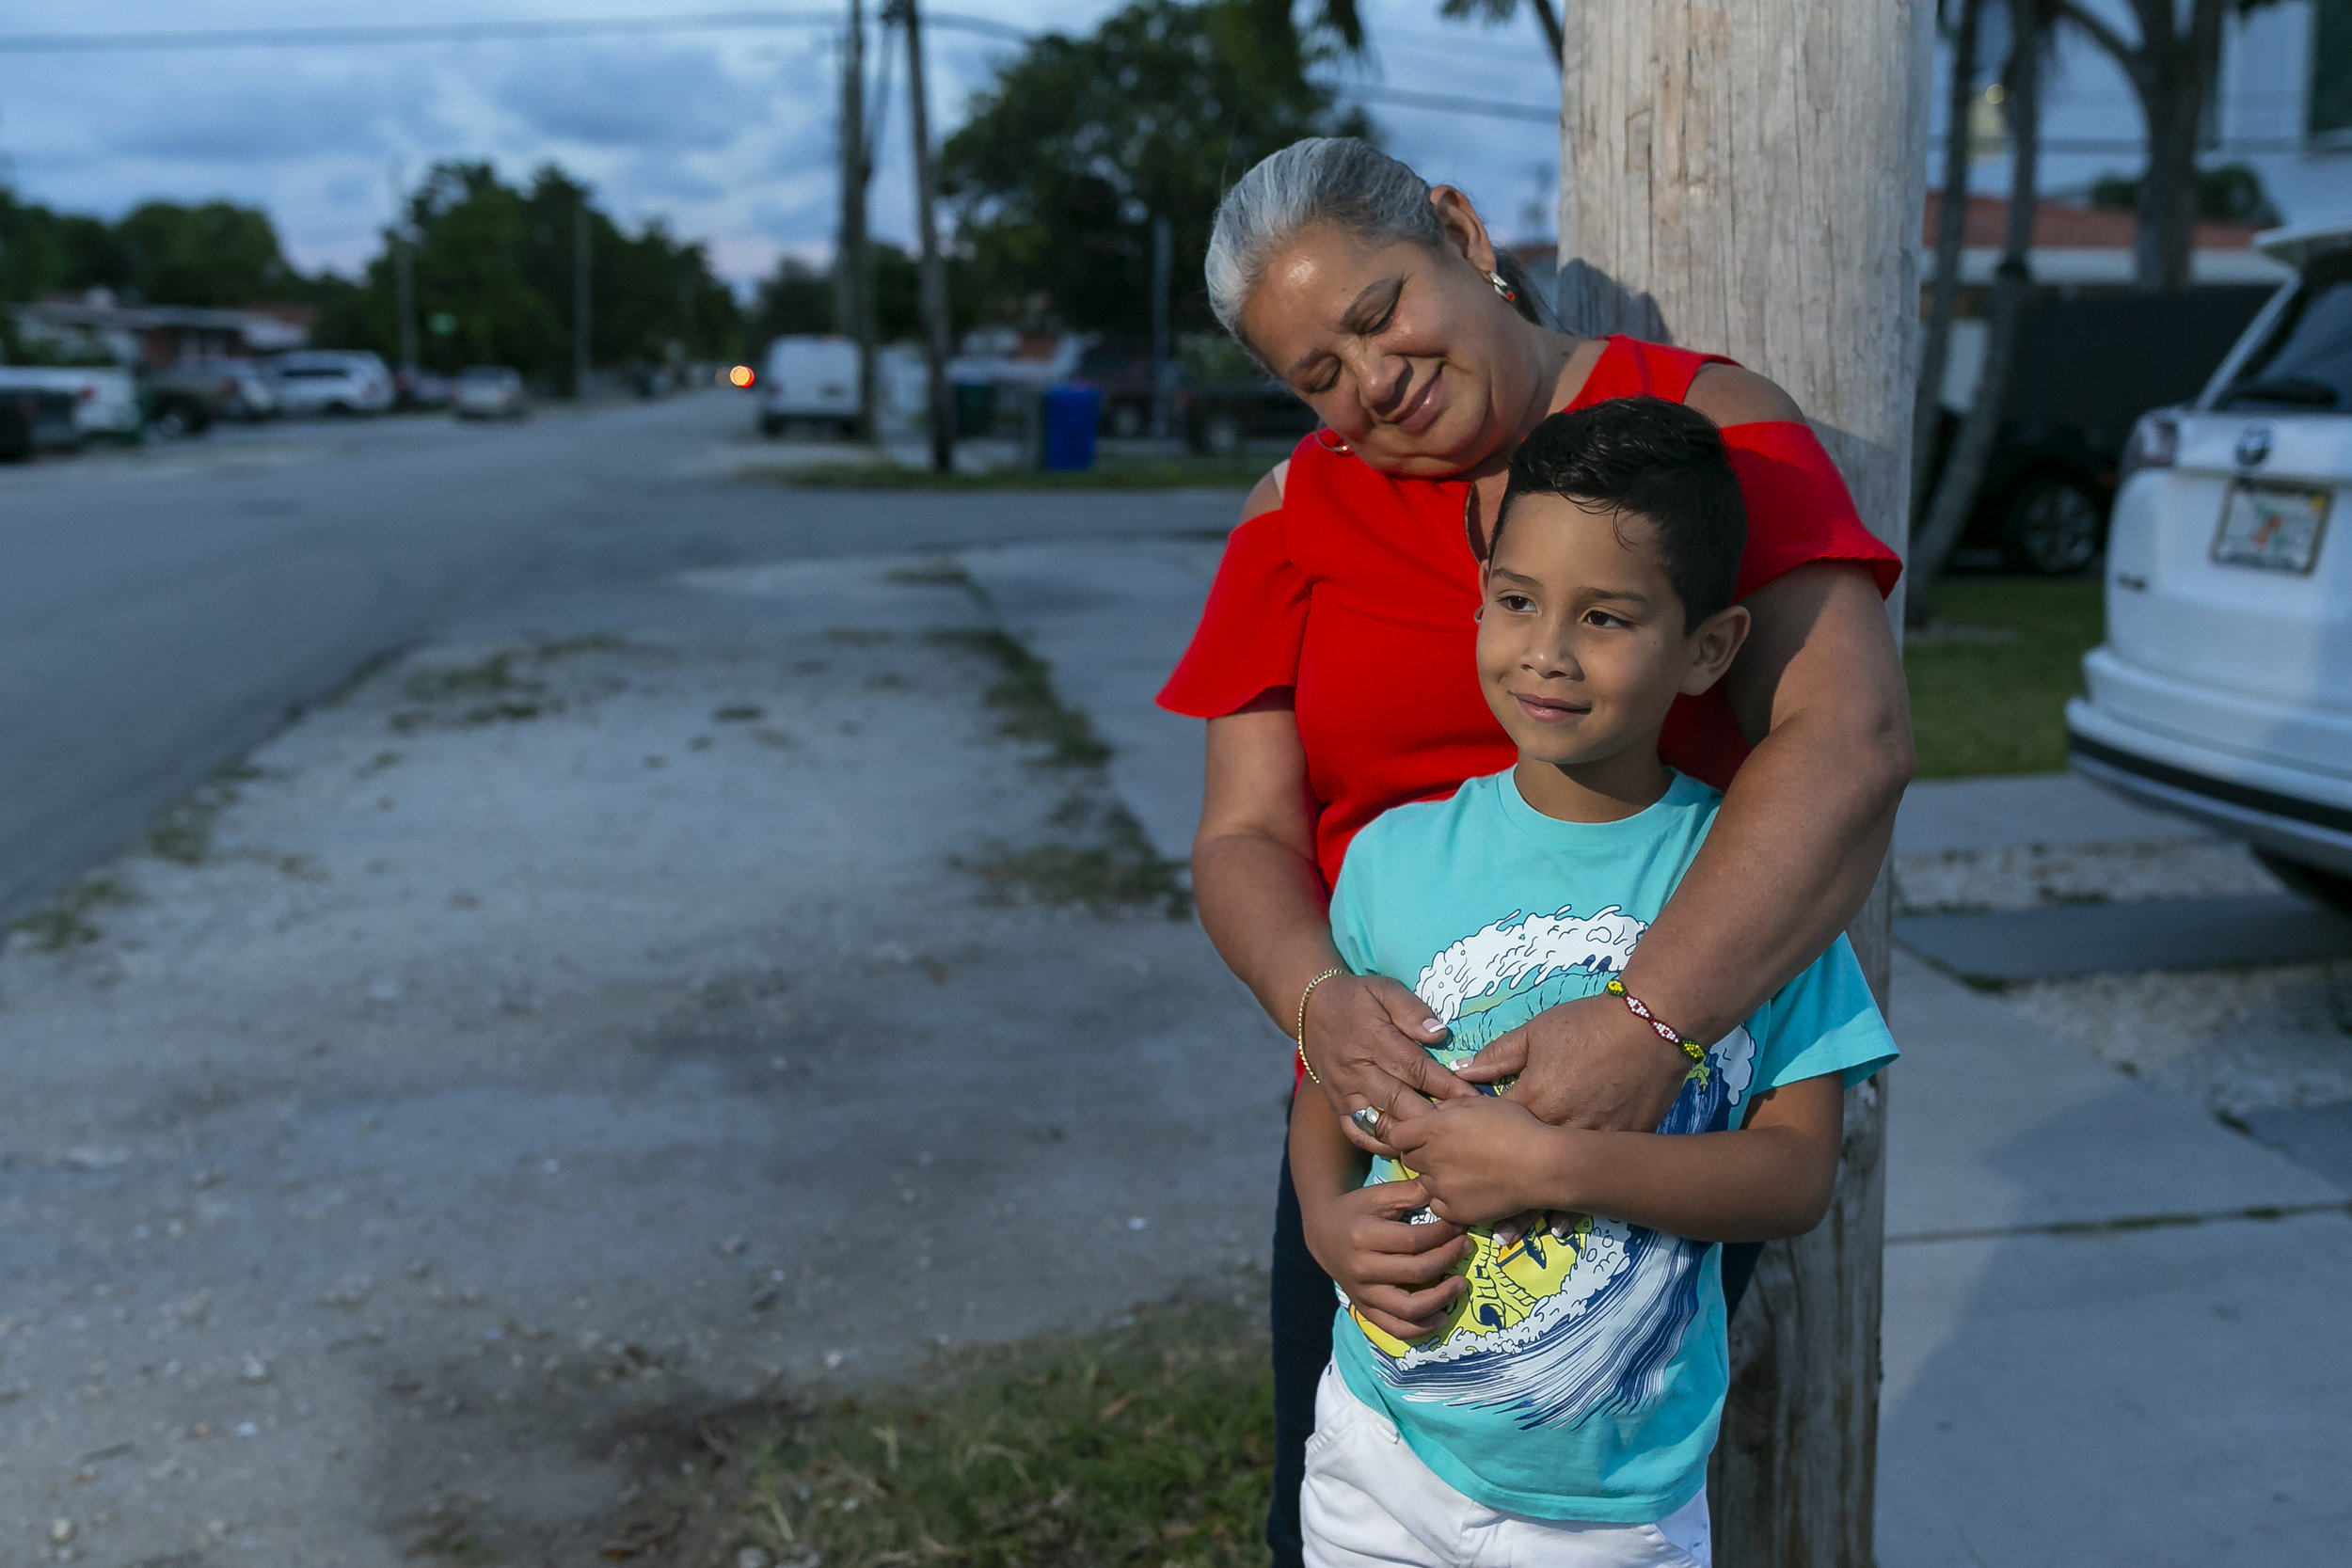 Maria Sanchez, 57, an employee at MIA Sky Chef, holds her grandson, Adonis King Sanchez, 7, outside of her home in Little Havana on Wednesday, June 5, 2019. Sanchez talked about her working conditions during an interview.